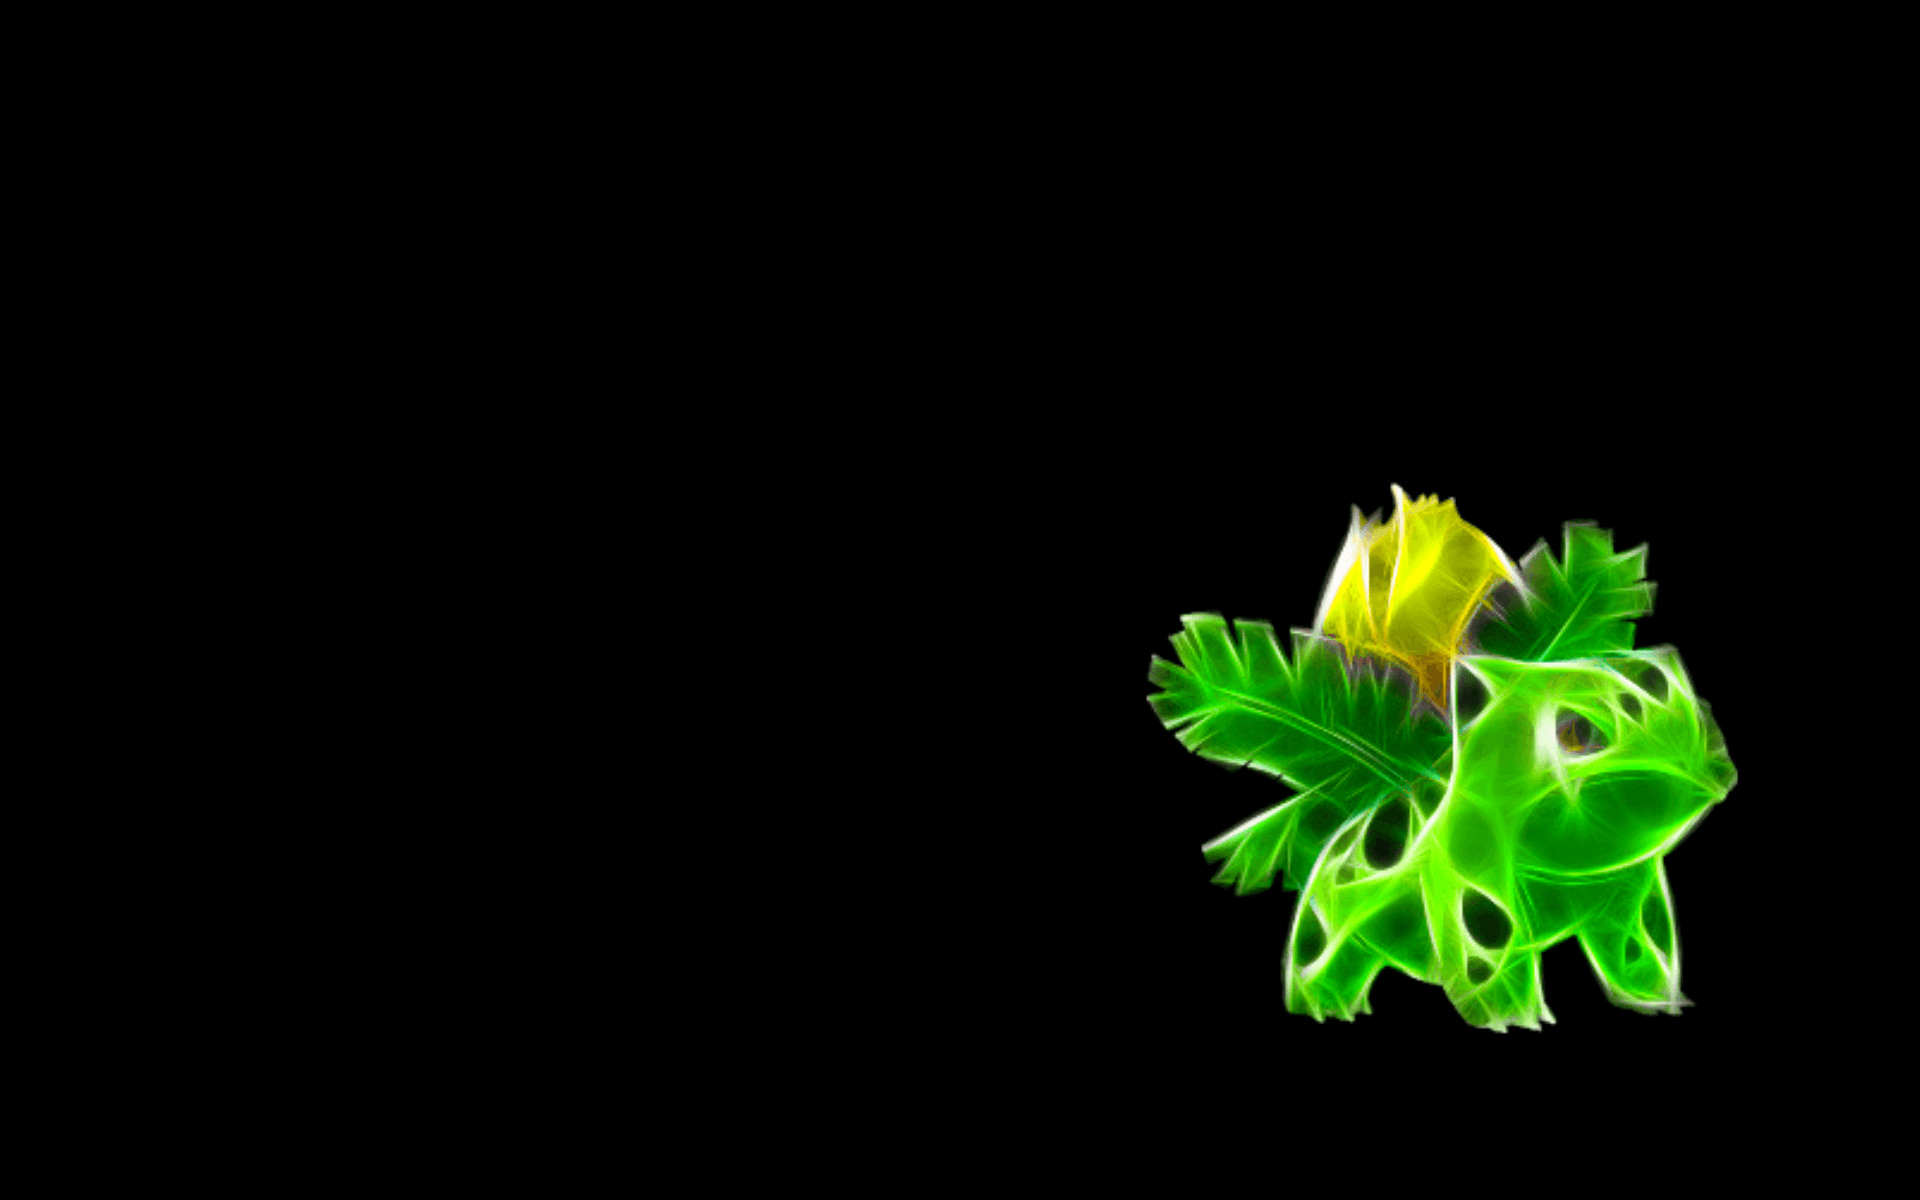 Ivysaur Wallpapers 48070 1920x1200 px ~ HDWallSource